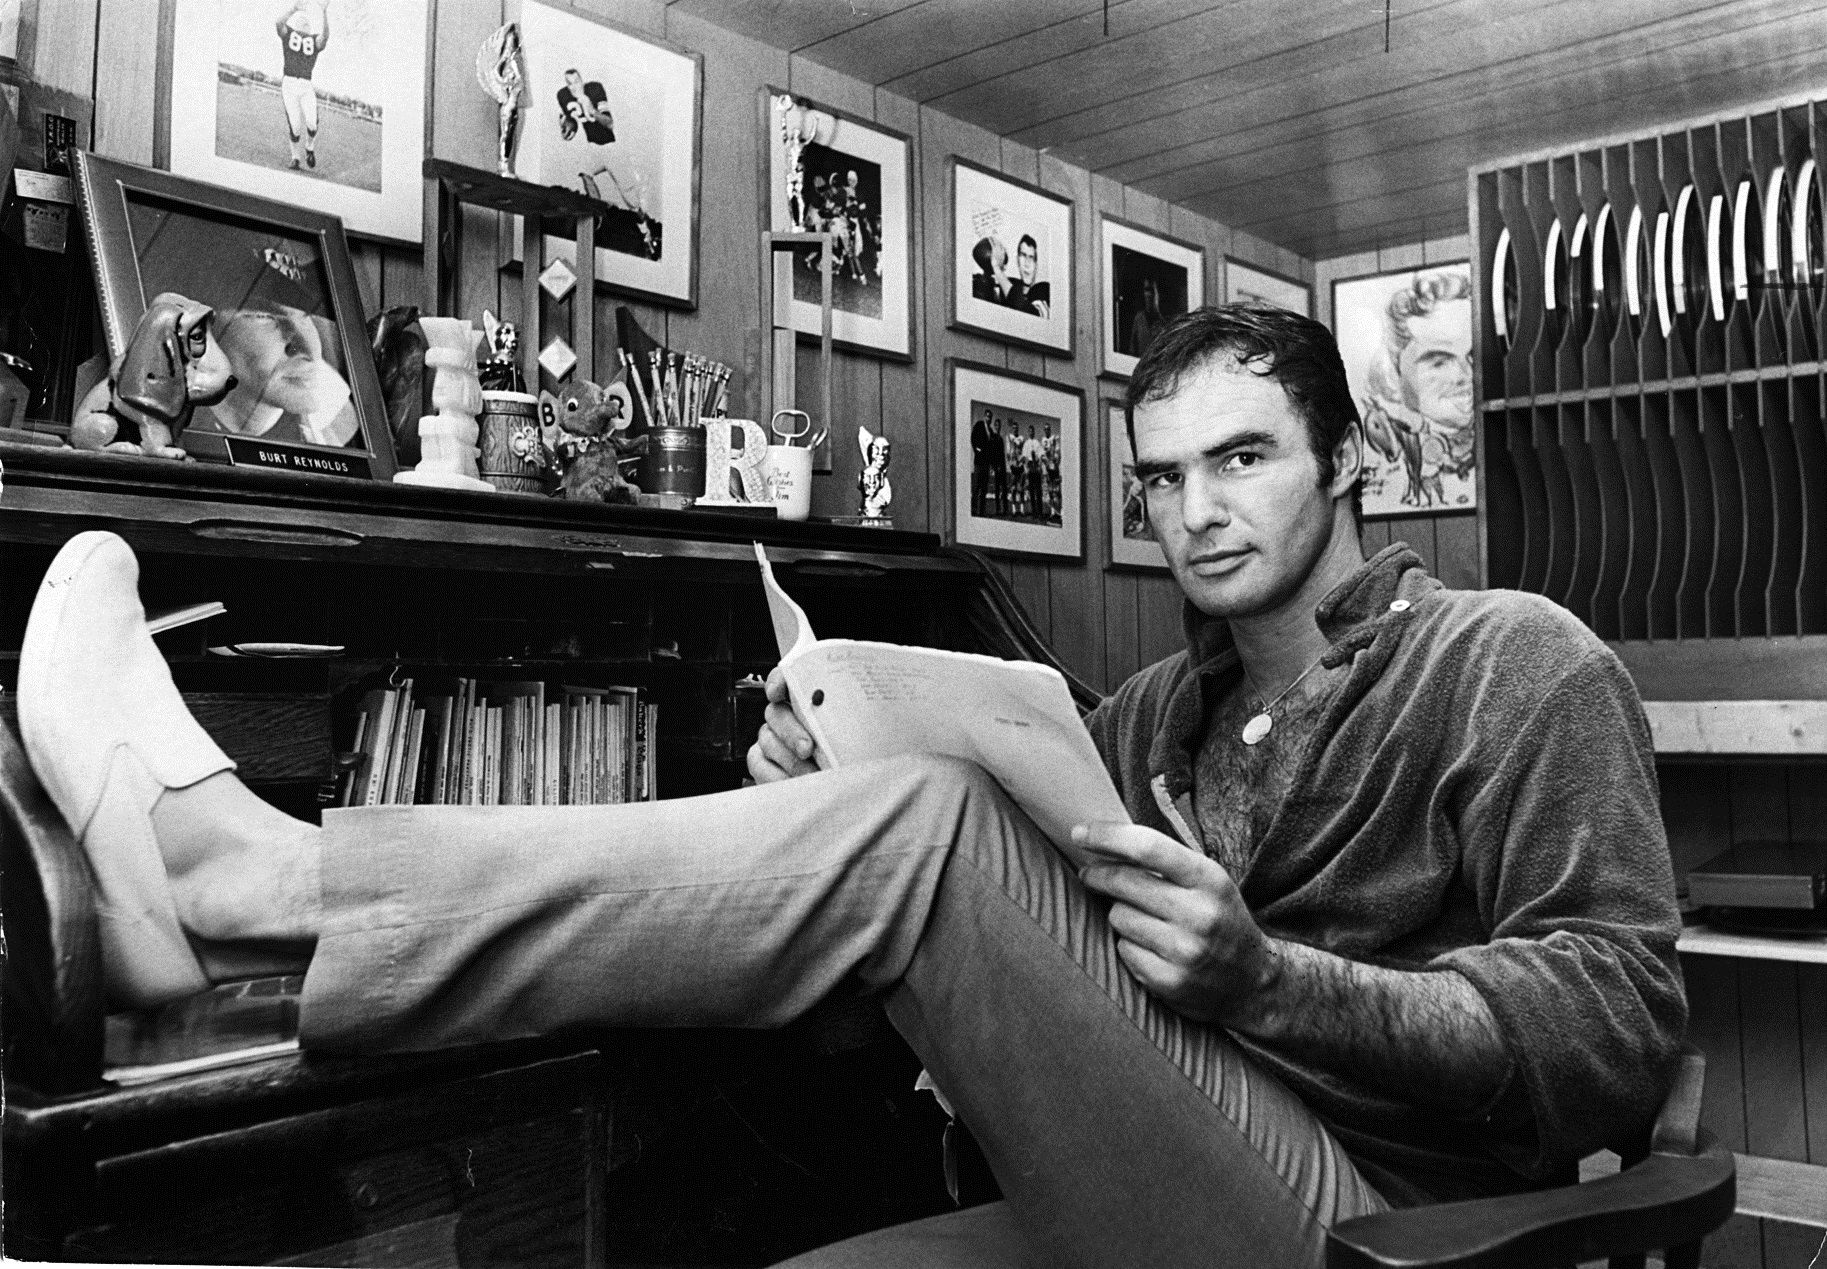 Burt Reynolds holding a paper in his hands while sitting on a chair